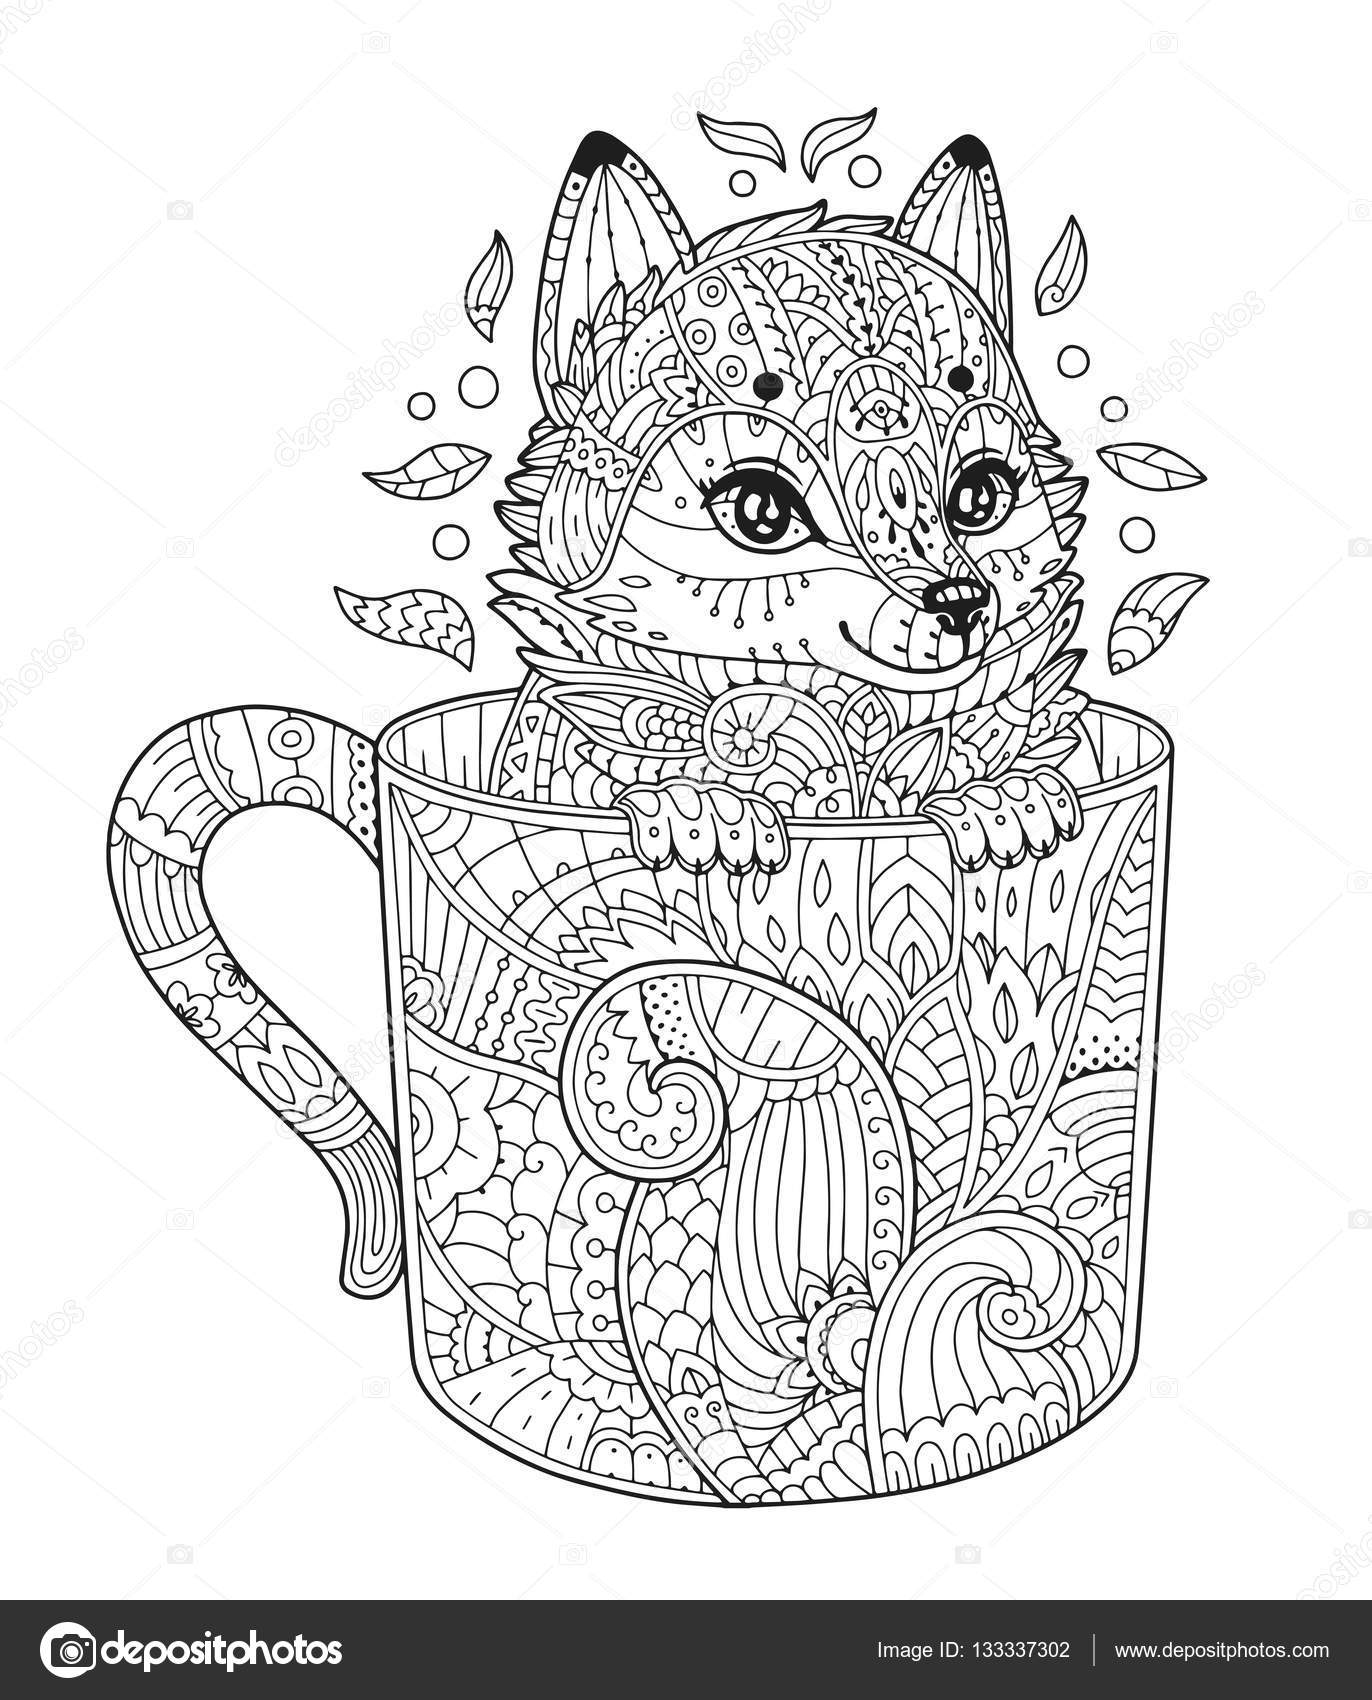 fox in cup coloring page u2014 stock vector ksania 133337302